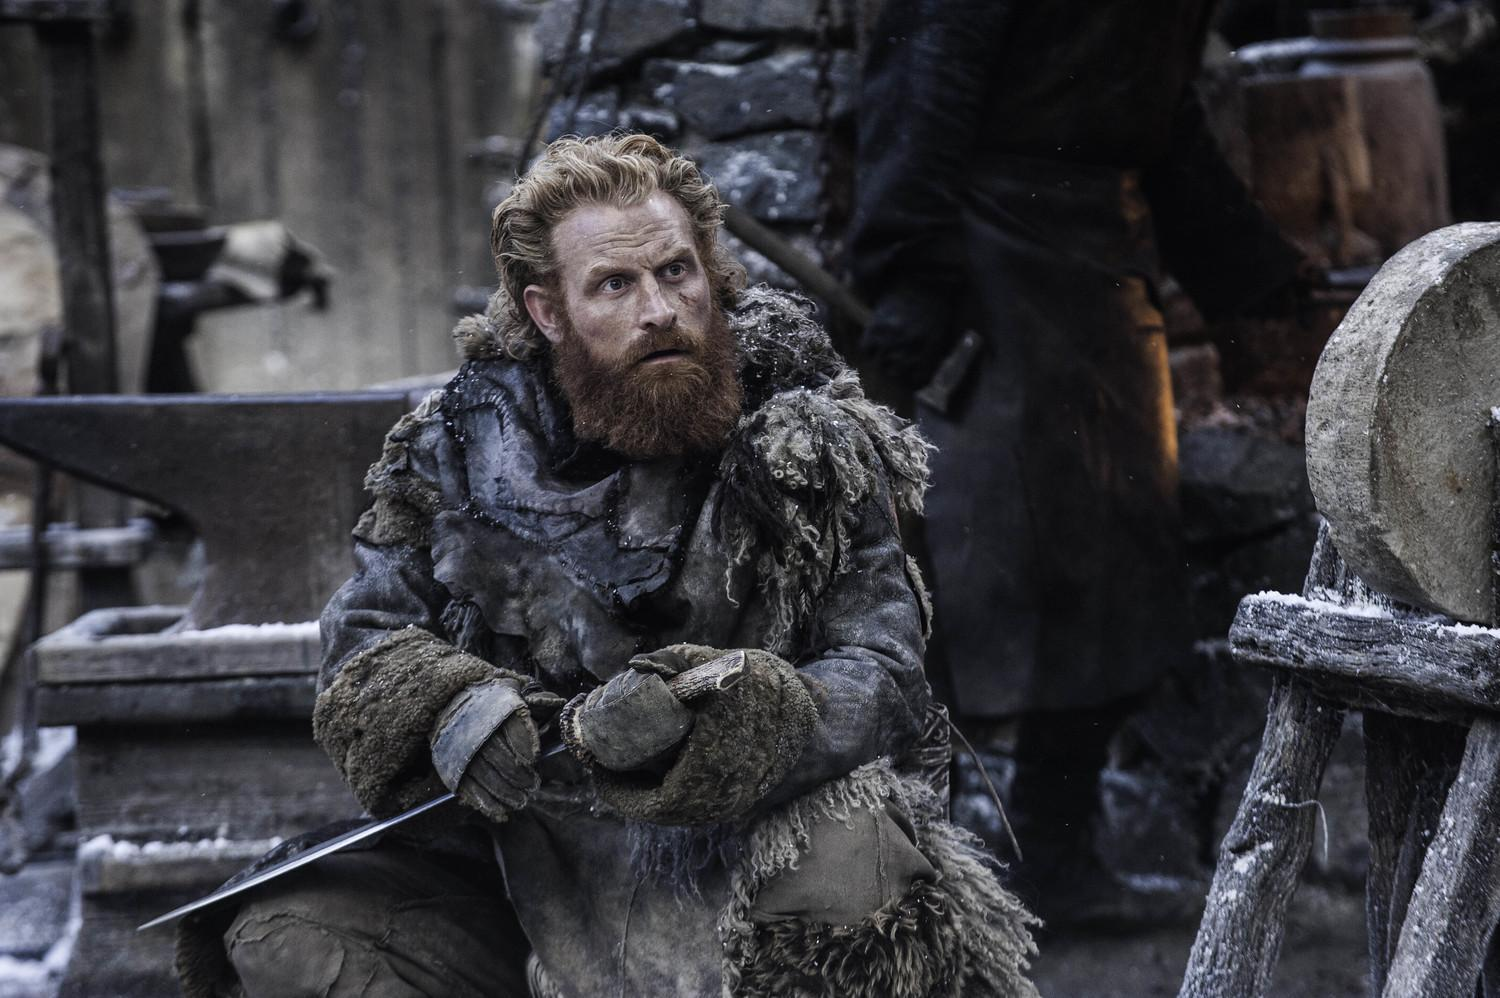 Updated New Photos From Game Of Thrones Season 6 Episode 4 Book Of The Stranger Watchers On The Wall A Game Of Thrones Community For Breaking News Casting And Commentary